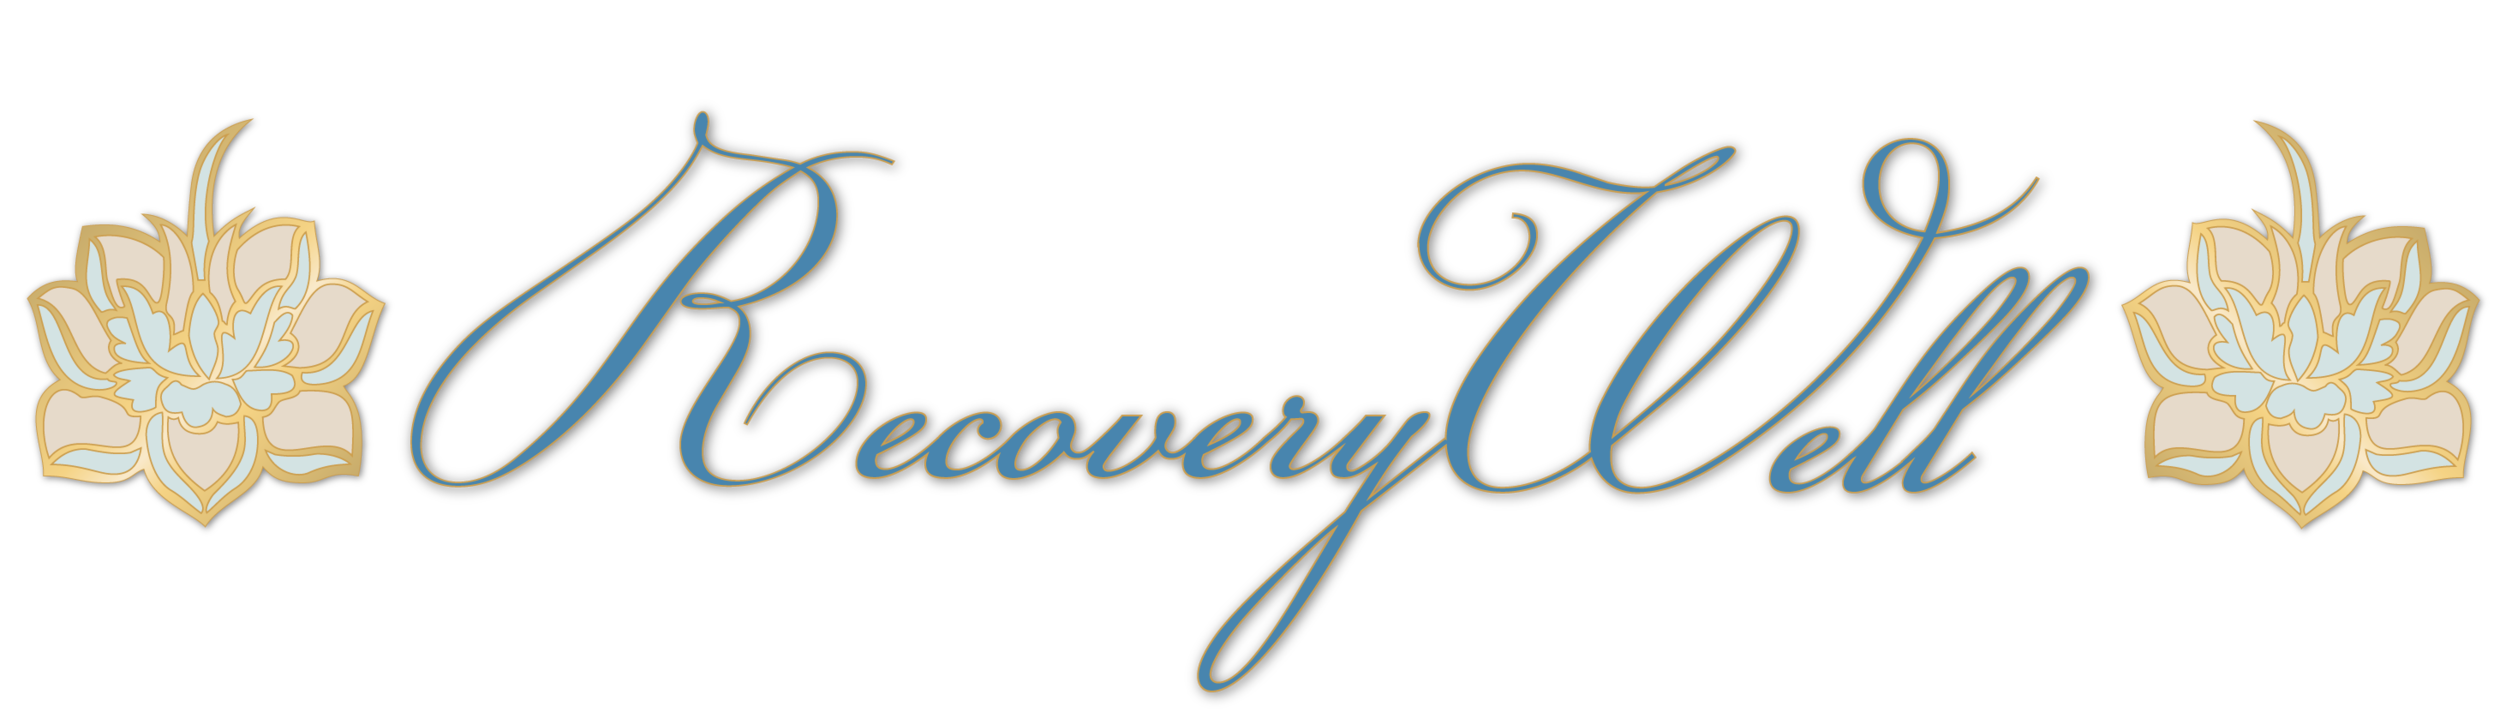 Drug and Alcohol Recovery Addiction Co-dependency Seeking Help Support Relapse Prevention